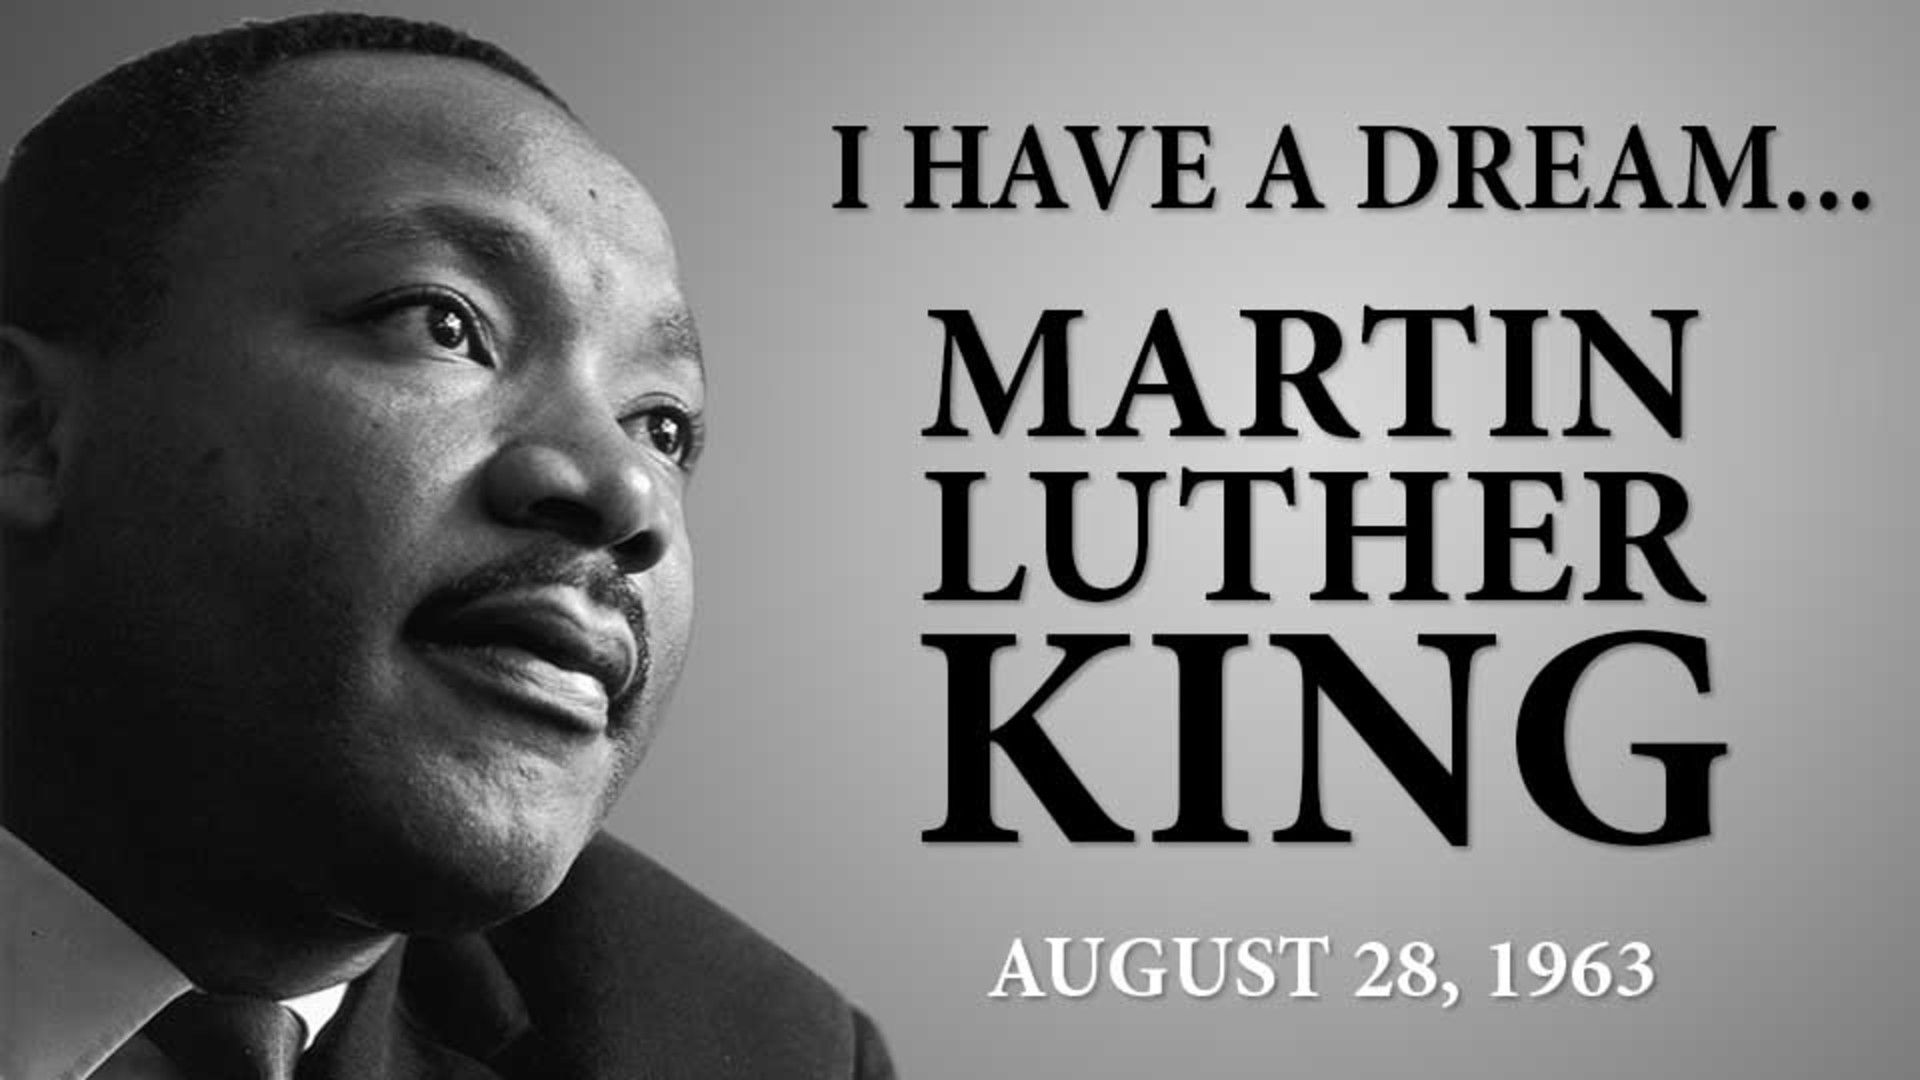 I Have A Dream Speech Martin Luther King Transcript Of Dr. Text Full To The By Junior Analysi